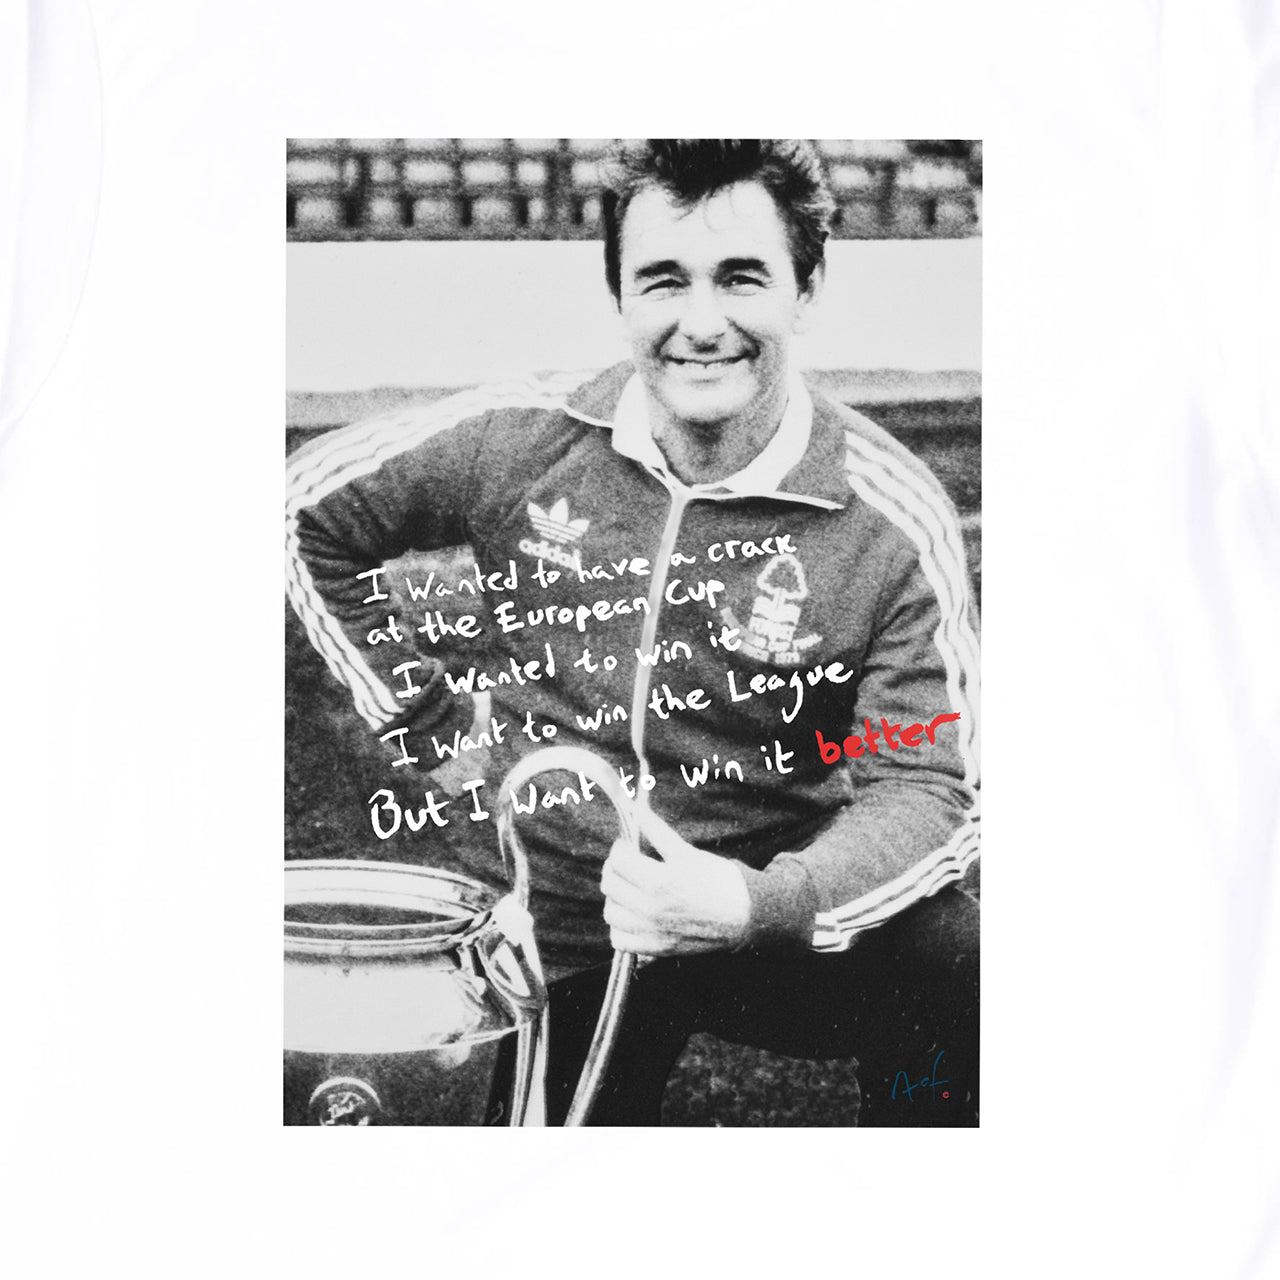 NFFC Mens White Win It Better T-Shirt